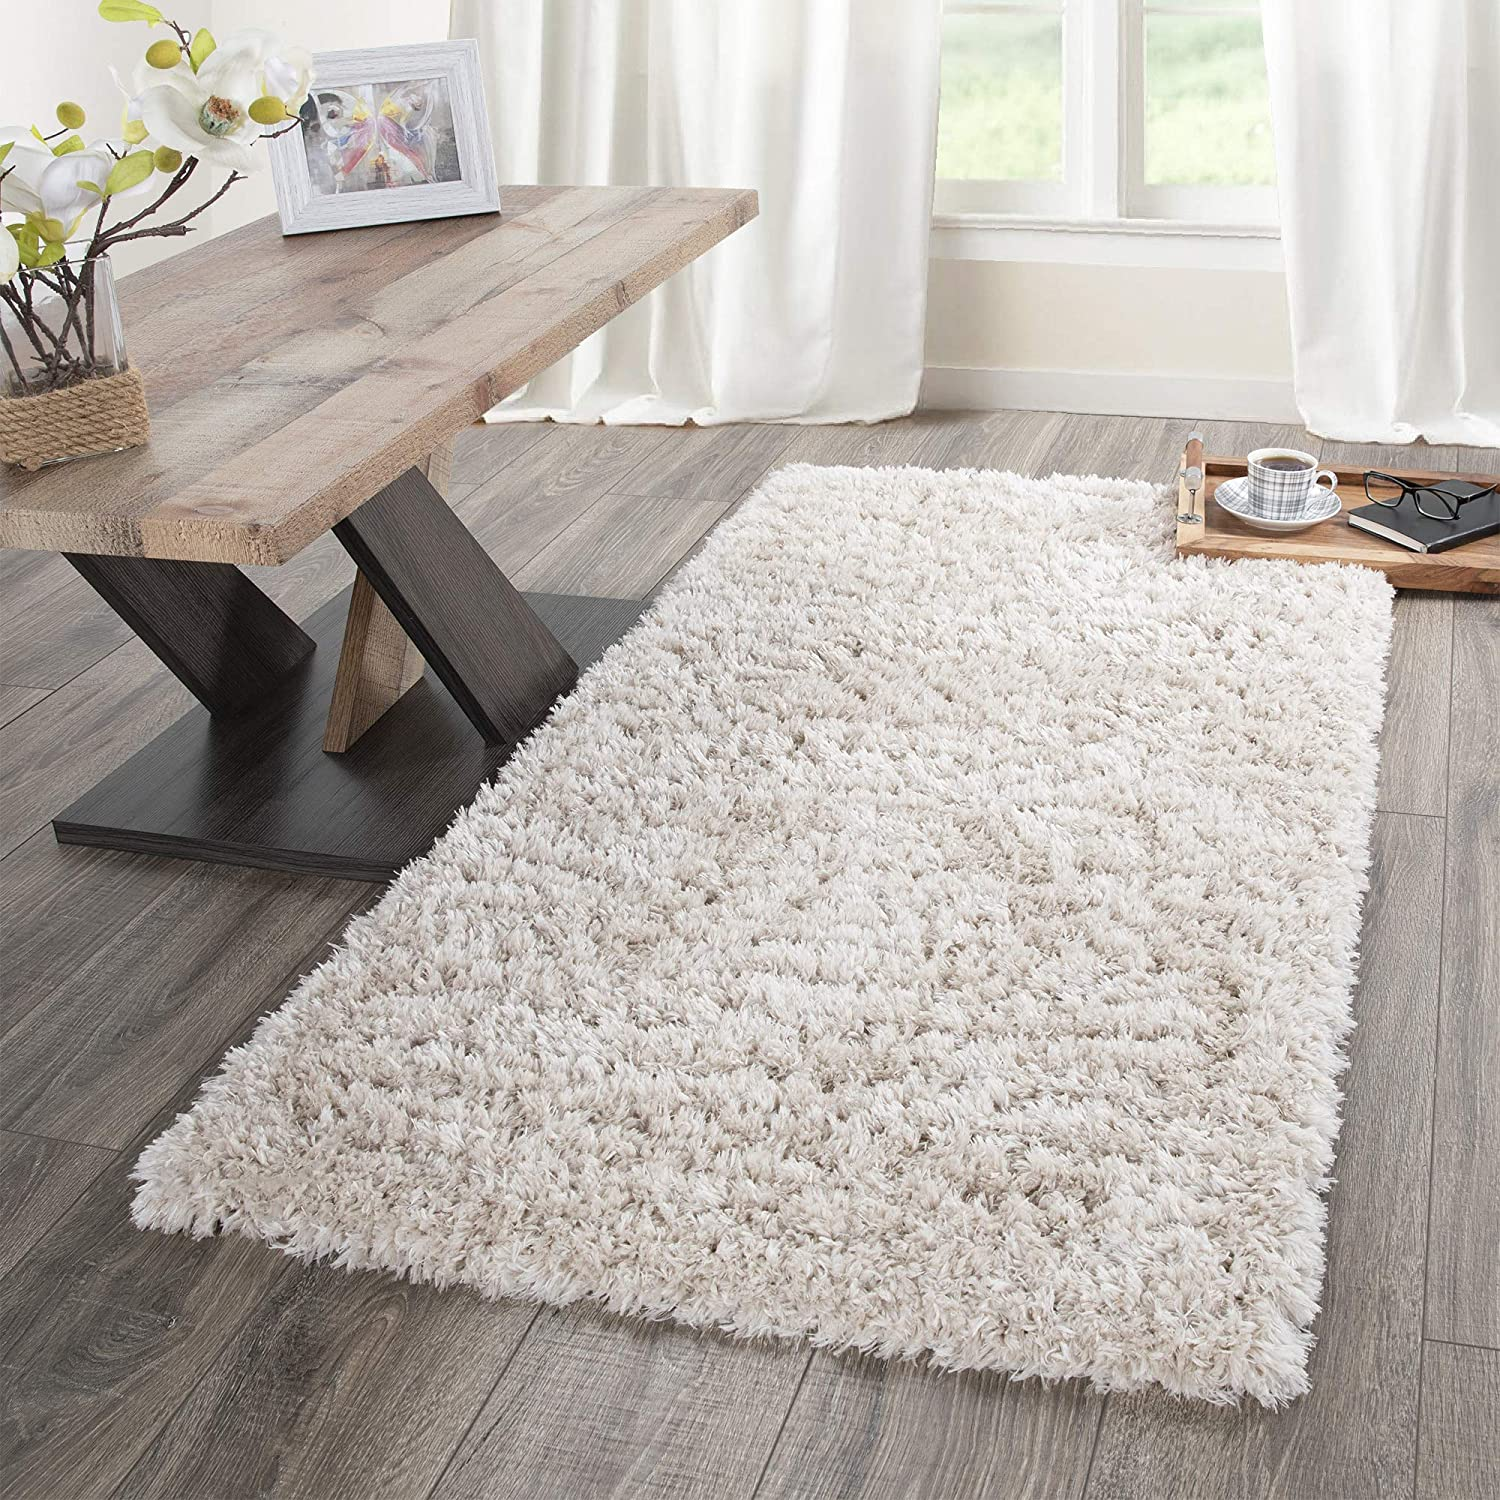 Sweet Home Stores SFFR1001-3X5 Flokati Collection Shag Runner Rug, 2'7